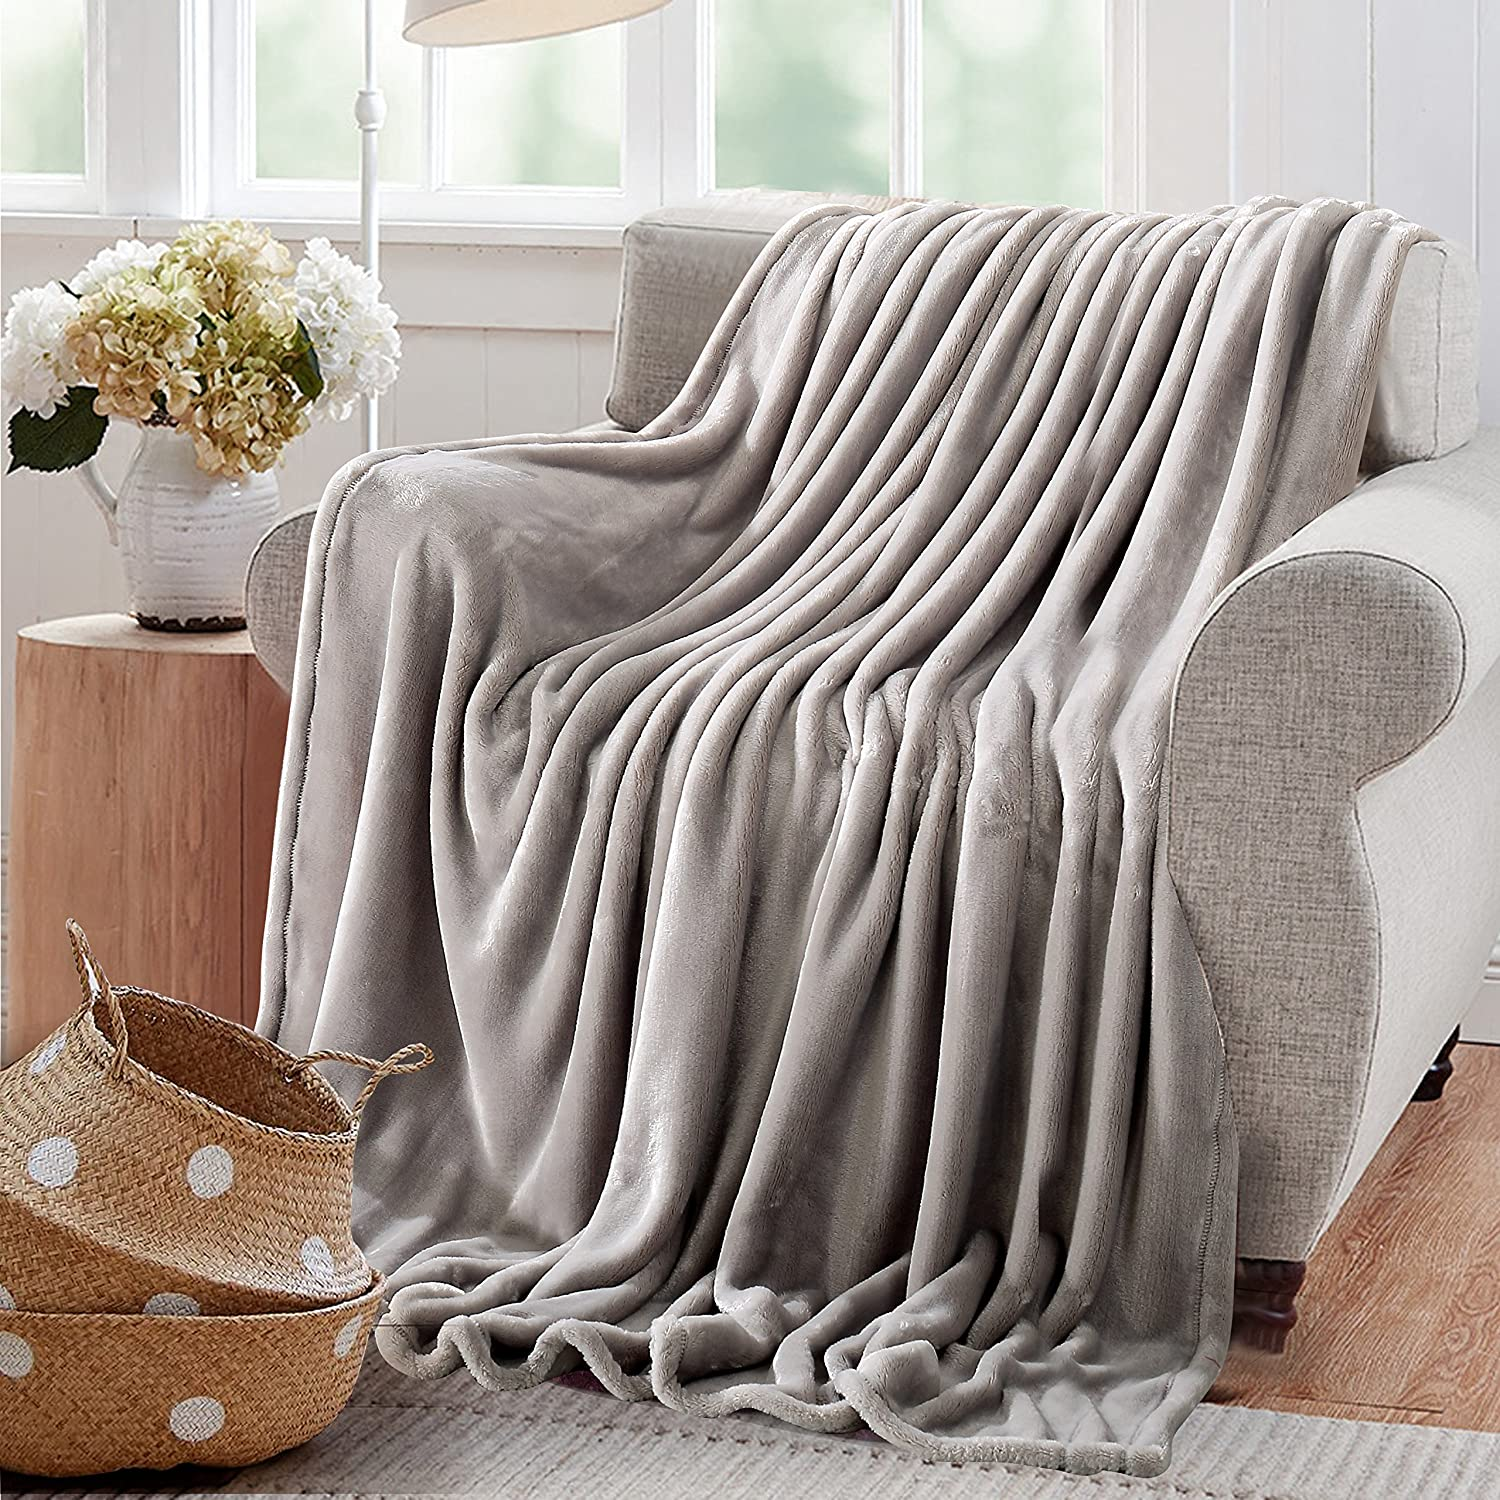 "Reafort Ultra Soft Flannel Fleece All Season Light Weight Living Room/Bedroom Warm Blanket (Silver Grey, Throw 50""X60"")"